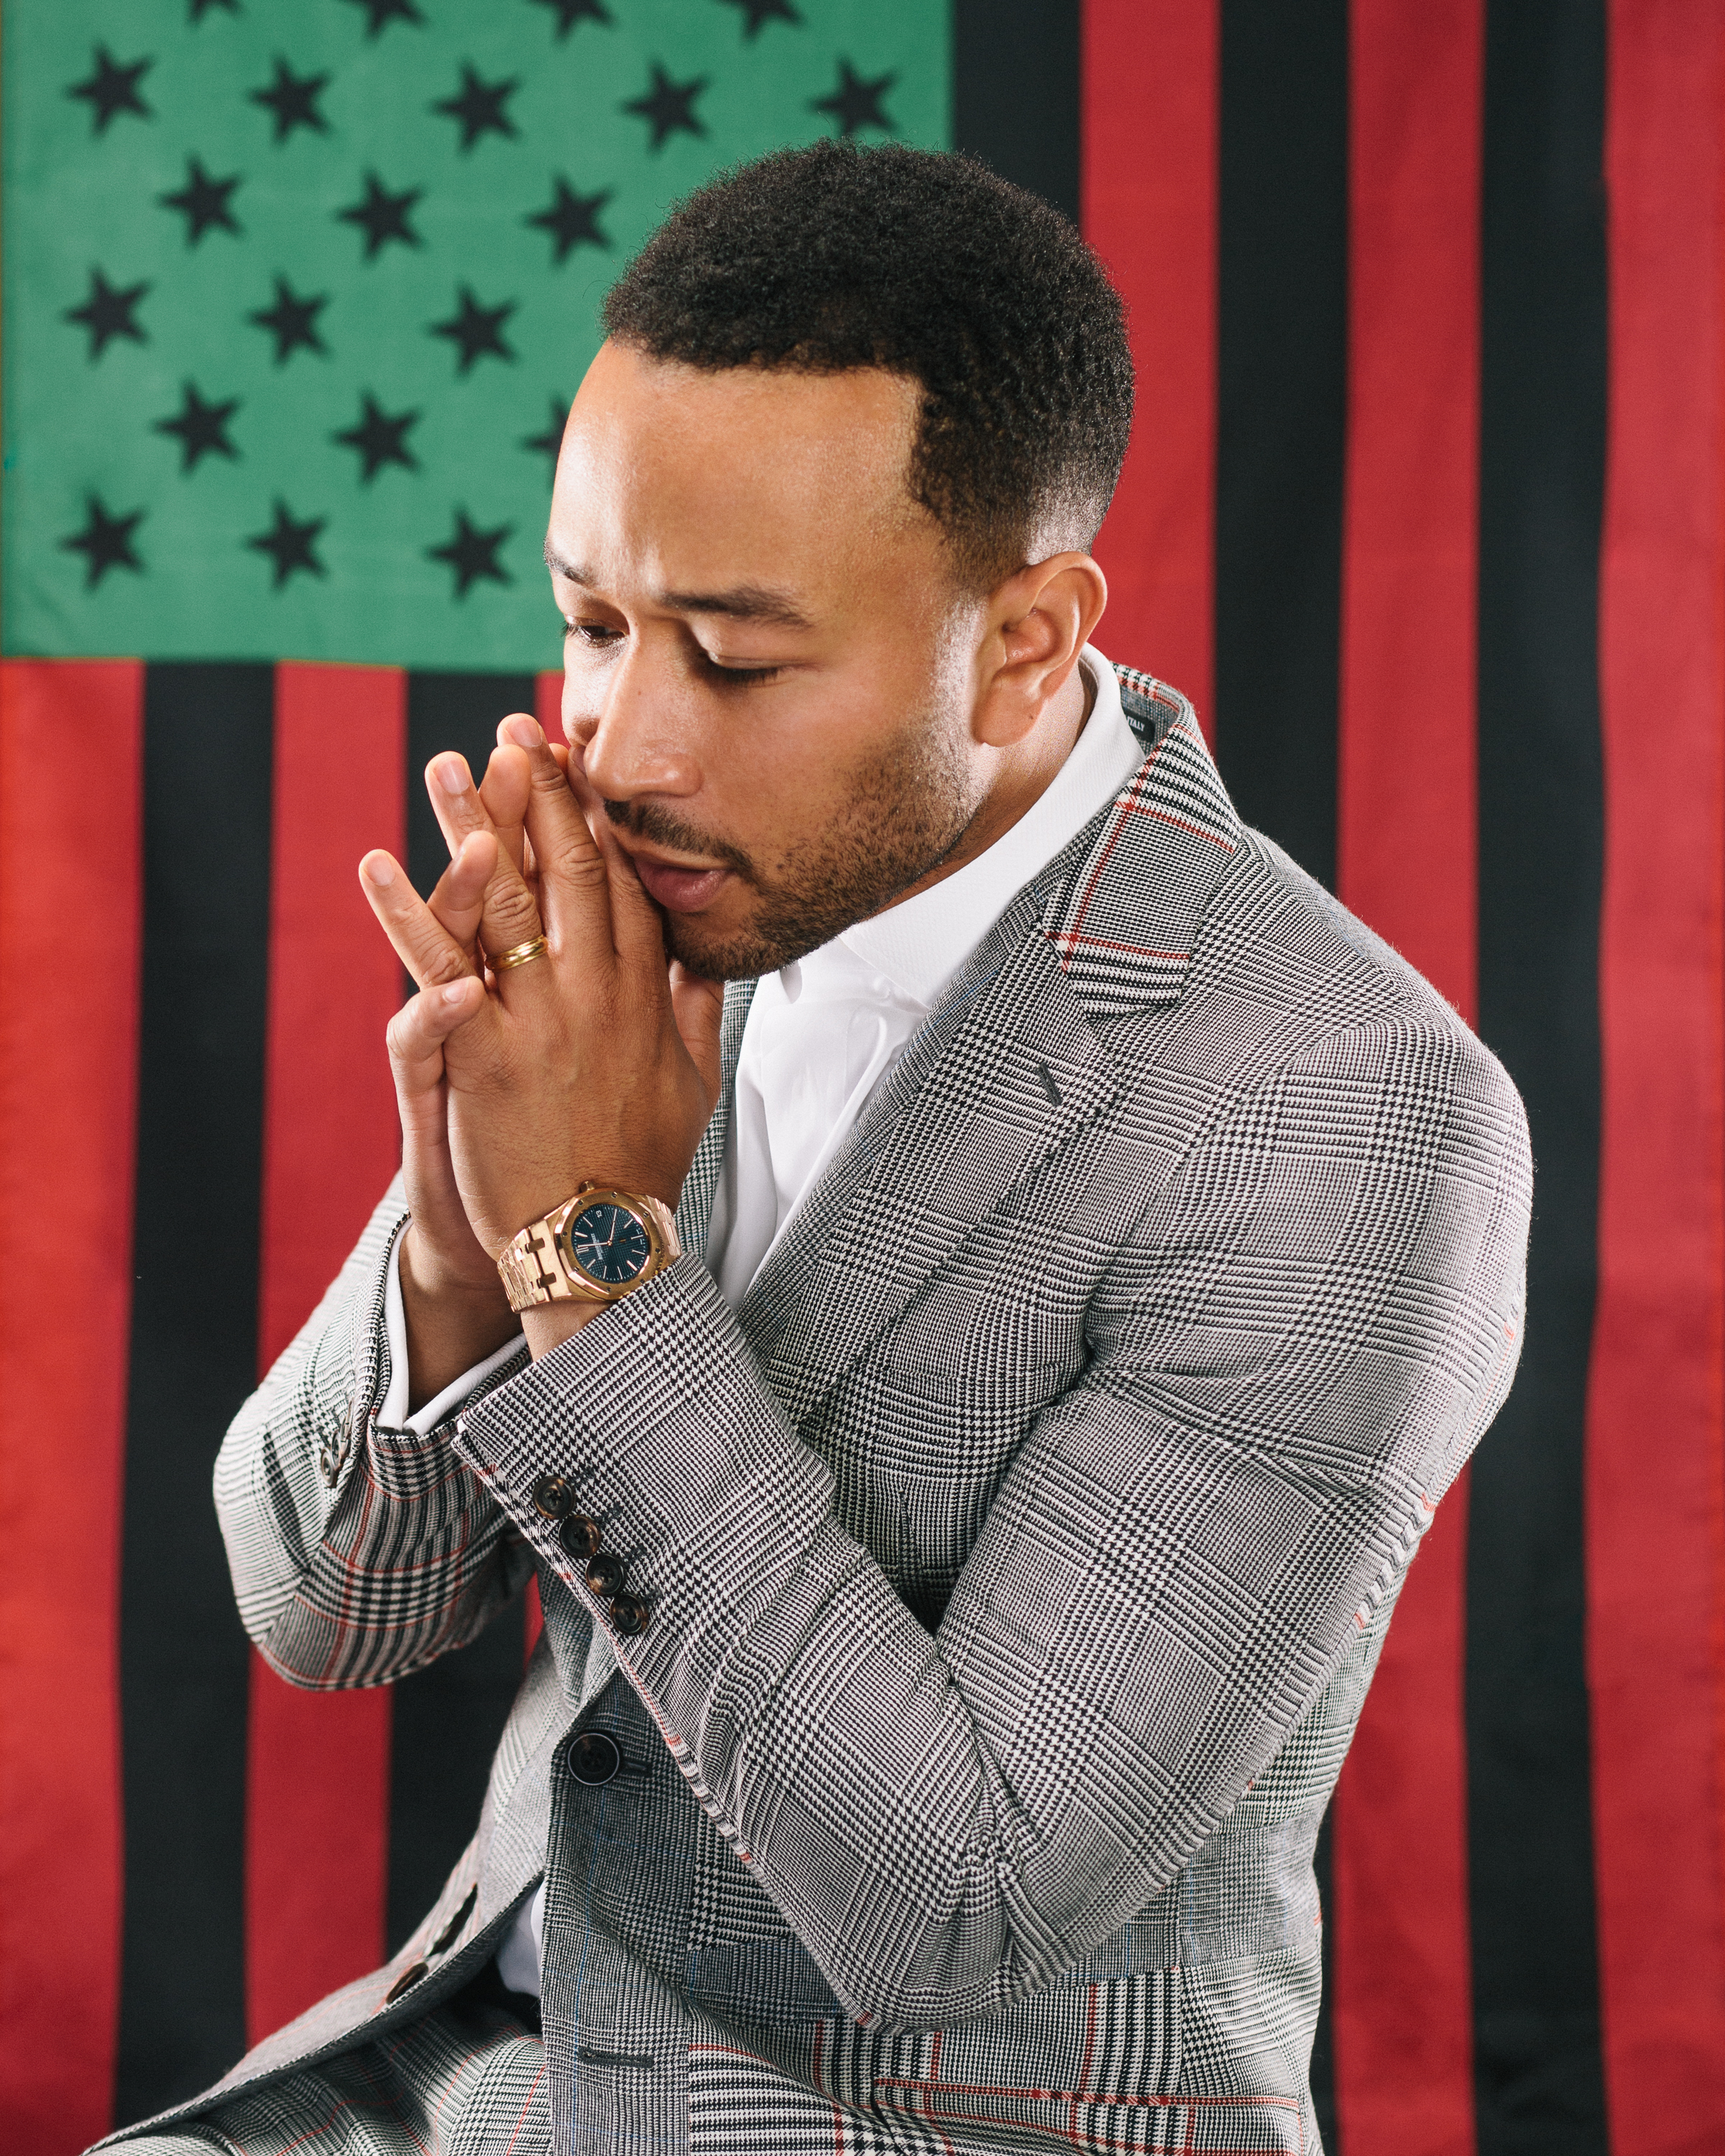 John Legend was #shotbymarkc for Culturecon NYC